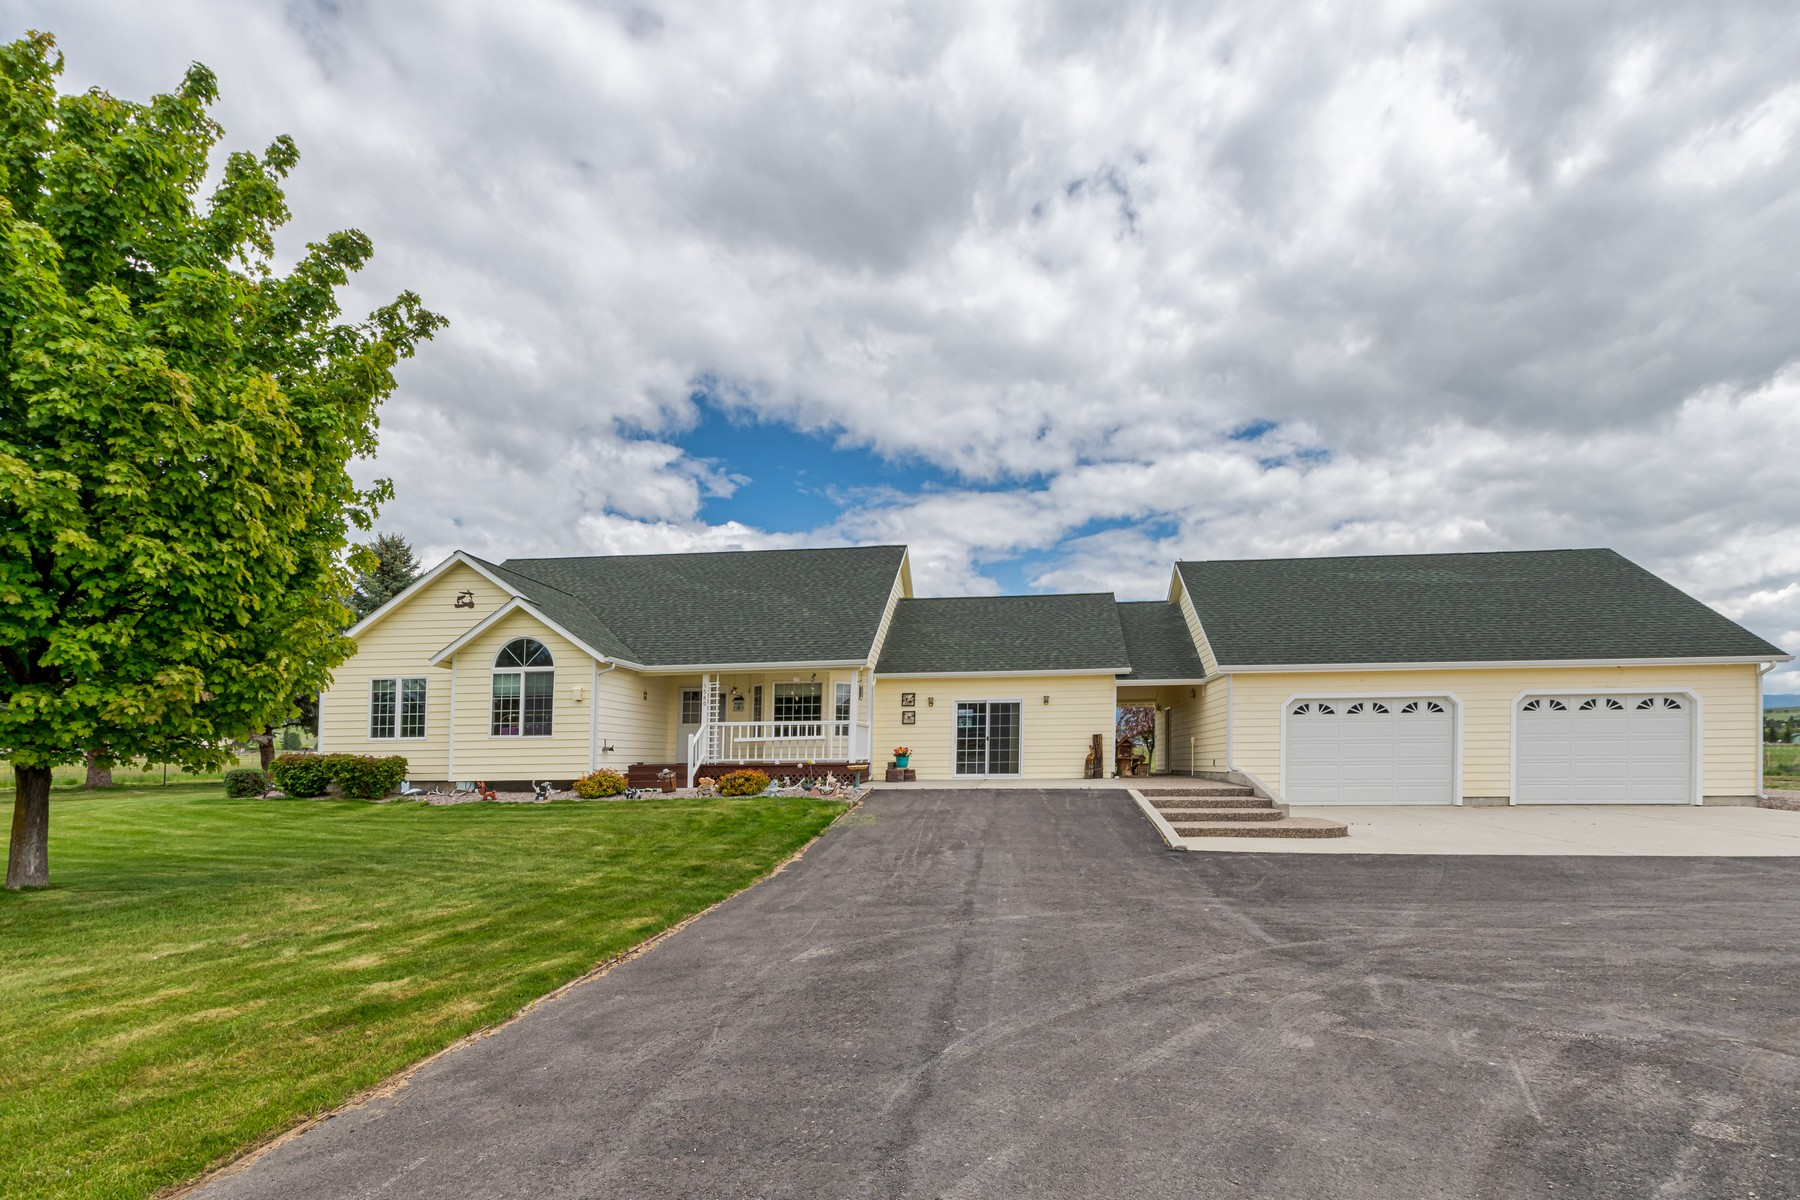 Single Family Homes for Sale at 5580 Riverview Drive Florence, Montana 59833 United States